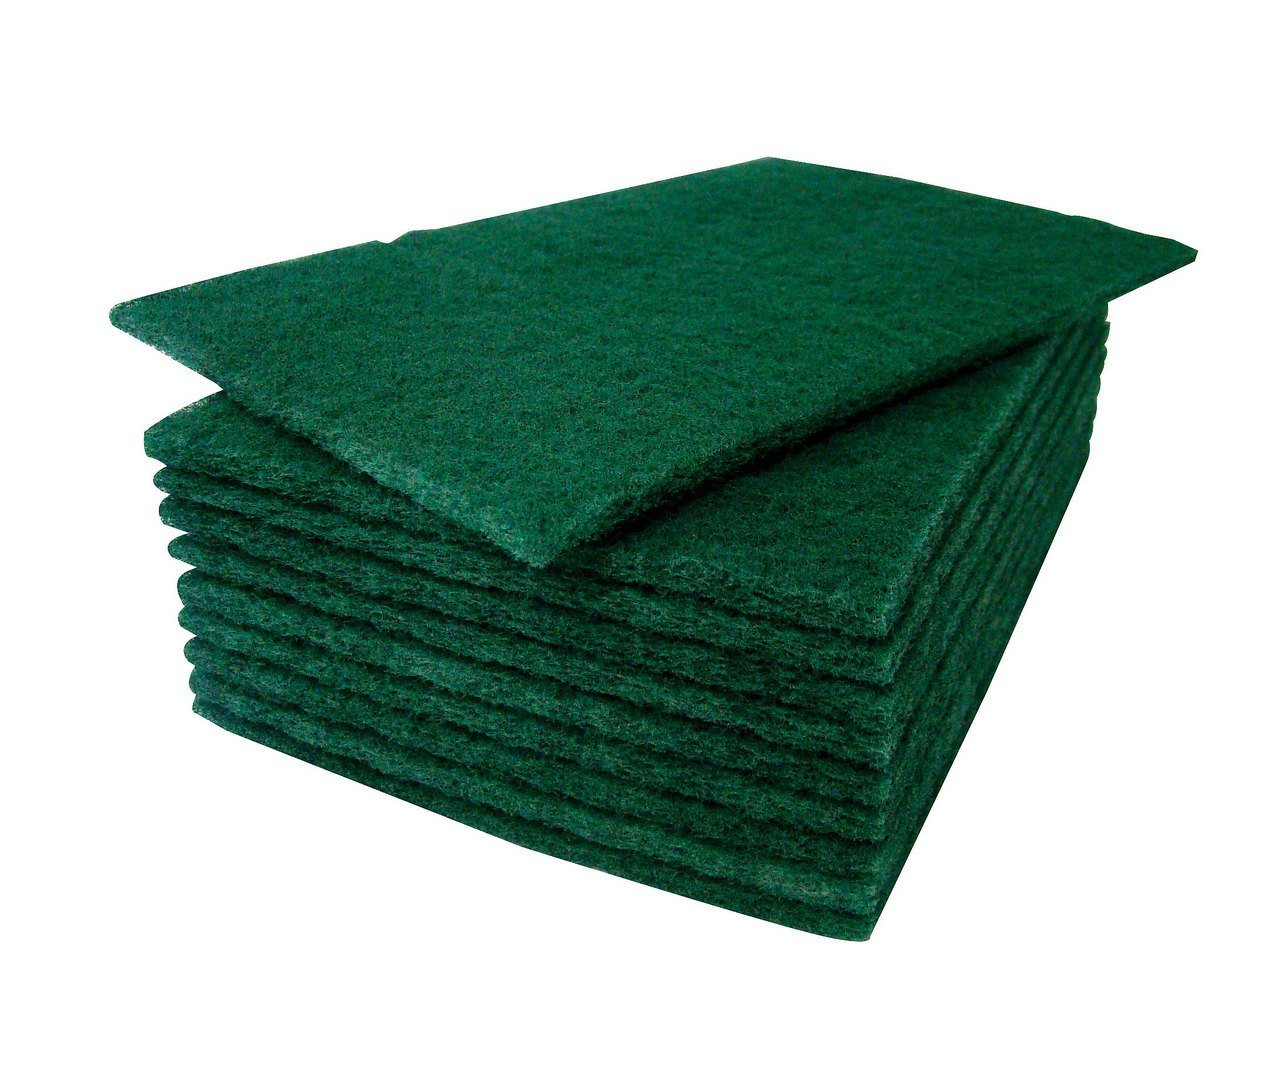 HeRO Dish Scrubber Scouring Pads - Household Scrub Pads for Stove Top Cleaner and Kitchen Scrubbers for Dishes, Cuts Solvents & Greasy Messes, Green 4.5 x 6 inch (Pack of 40)          by HERO IMPORTS (Image #7)